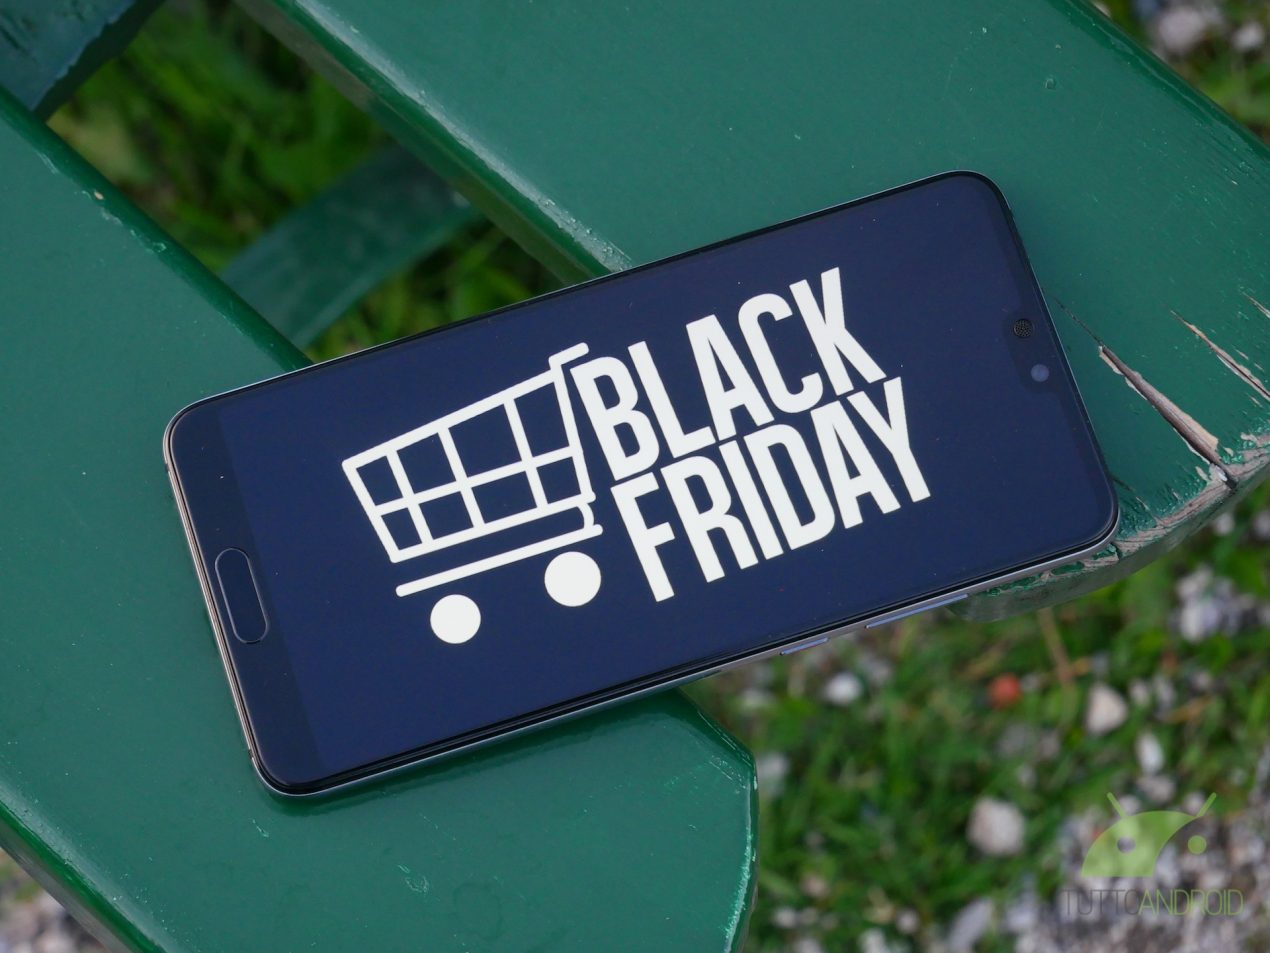 Amazon: Black Friday e store temporaneo a Milano